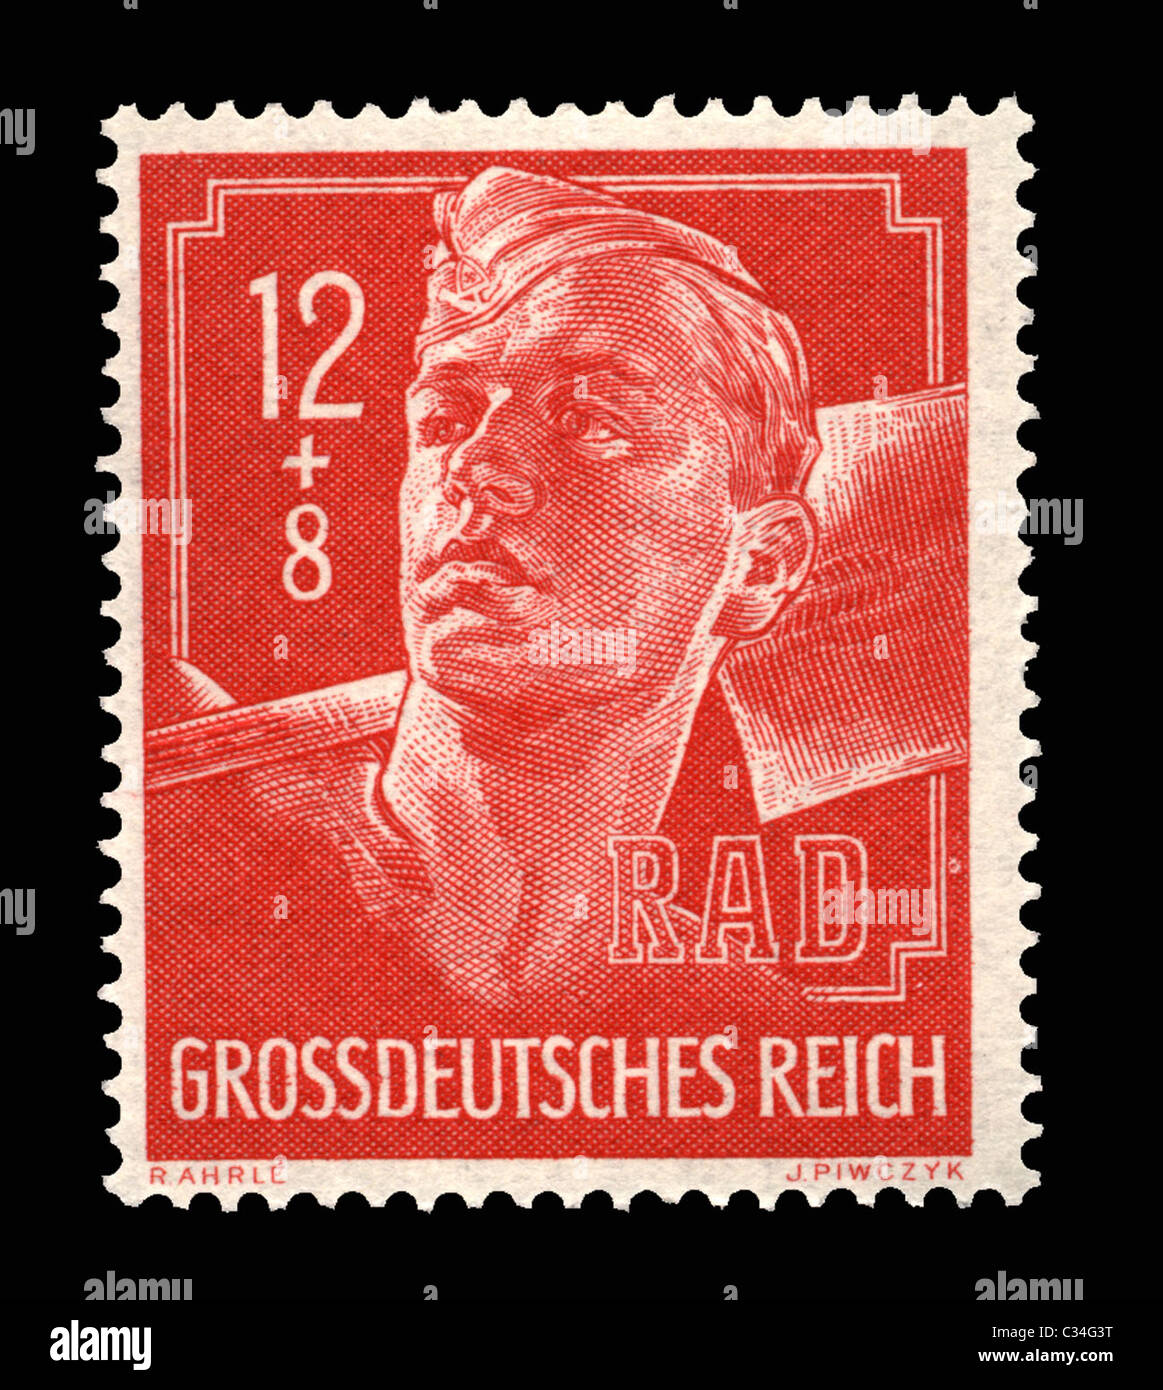 A WW11 German postage stamp showing an RAD labor worker with shovel - Stock Image